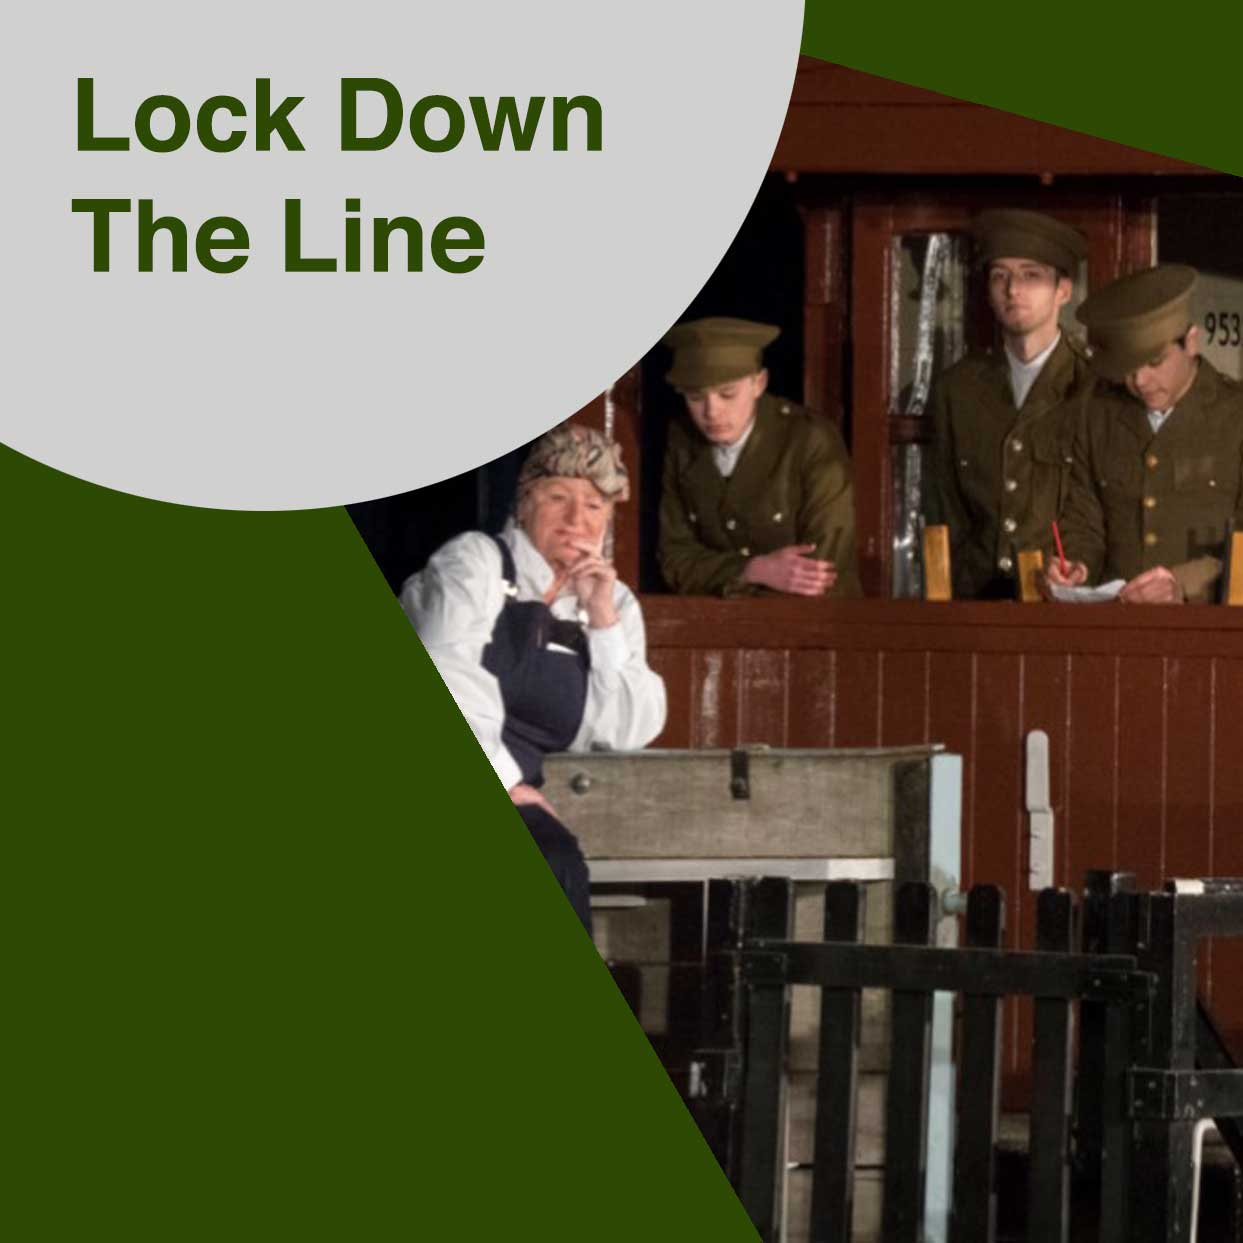 Lock Down The Line, Barrow Hill Community, Chesterfield